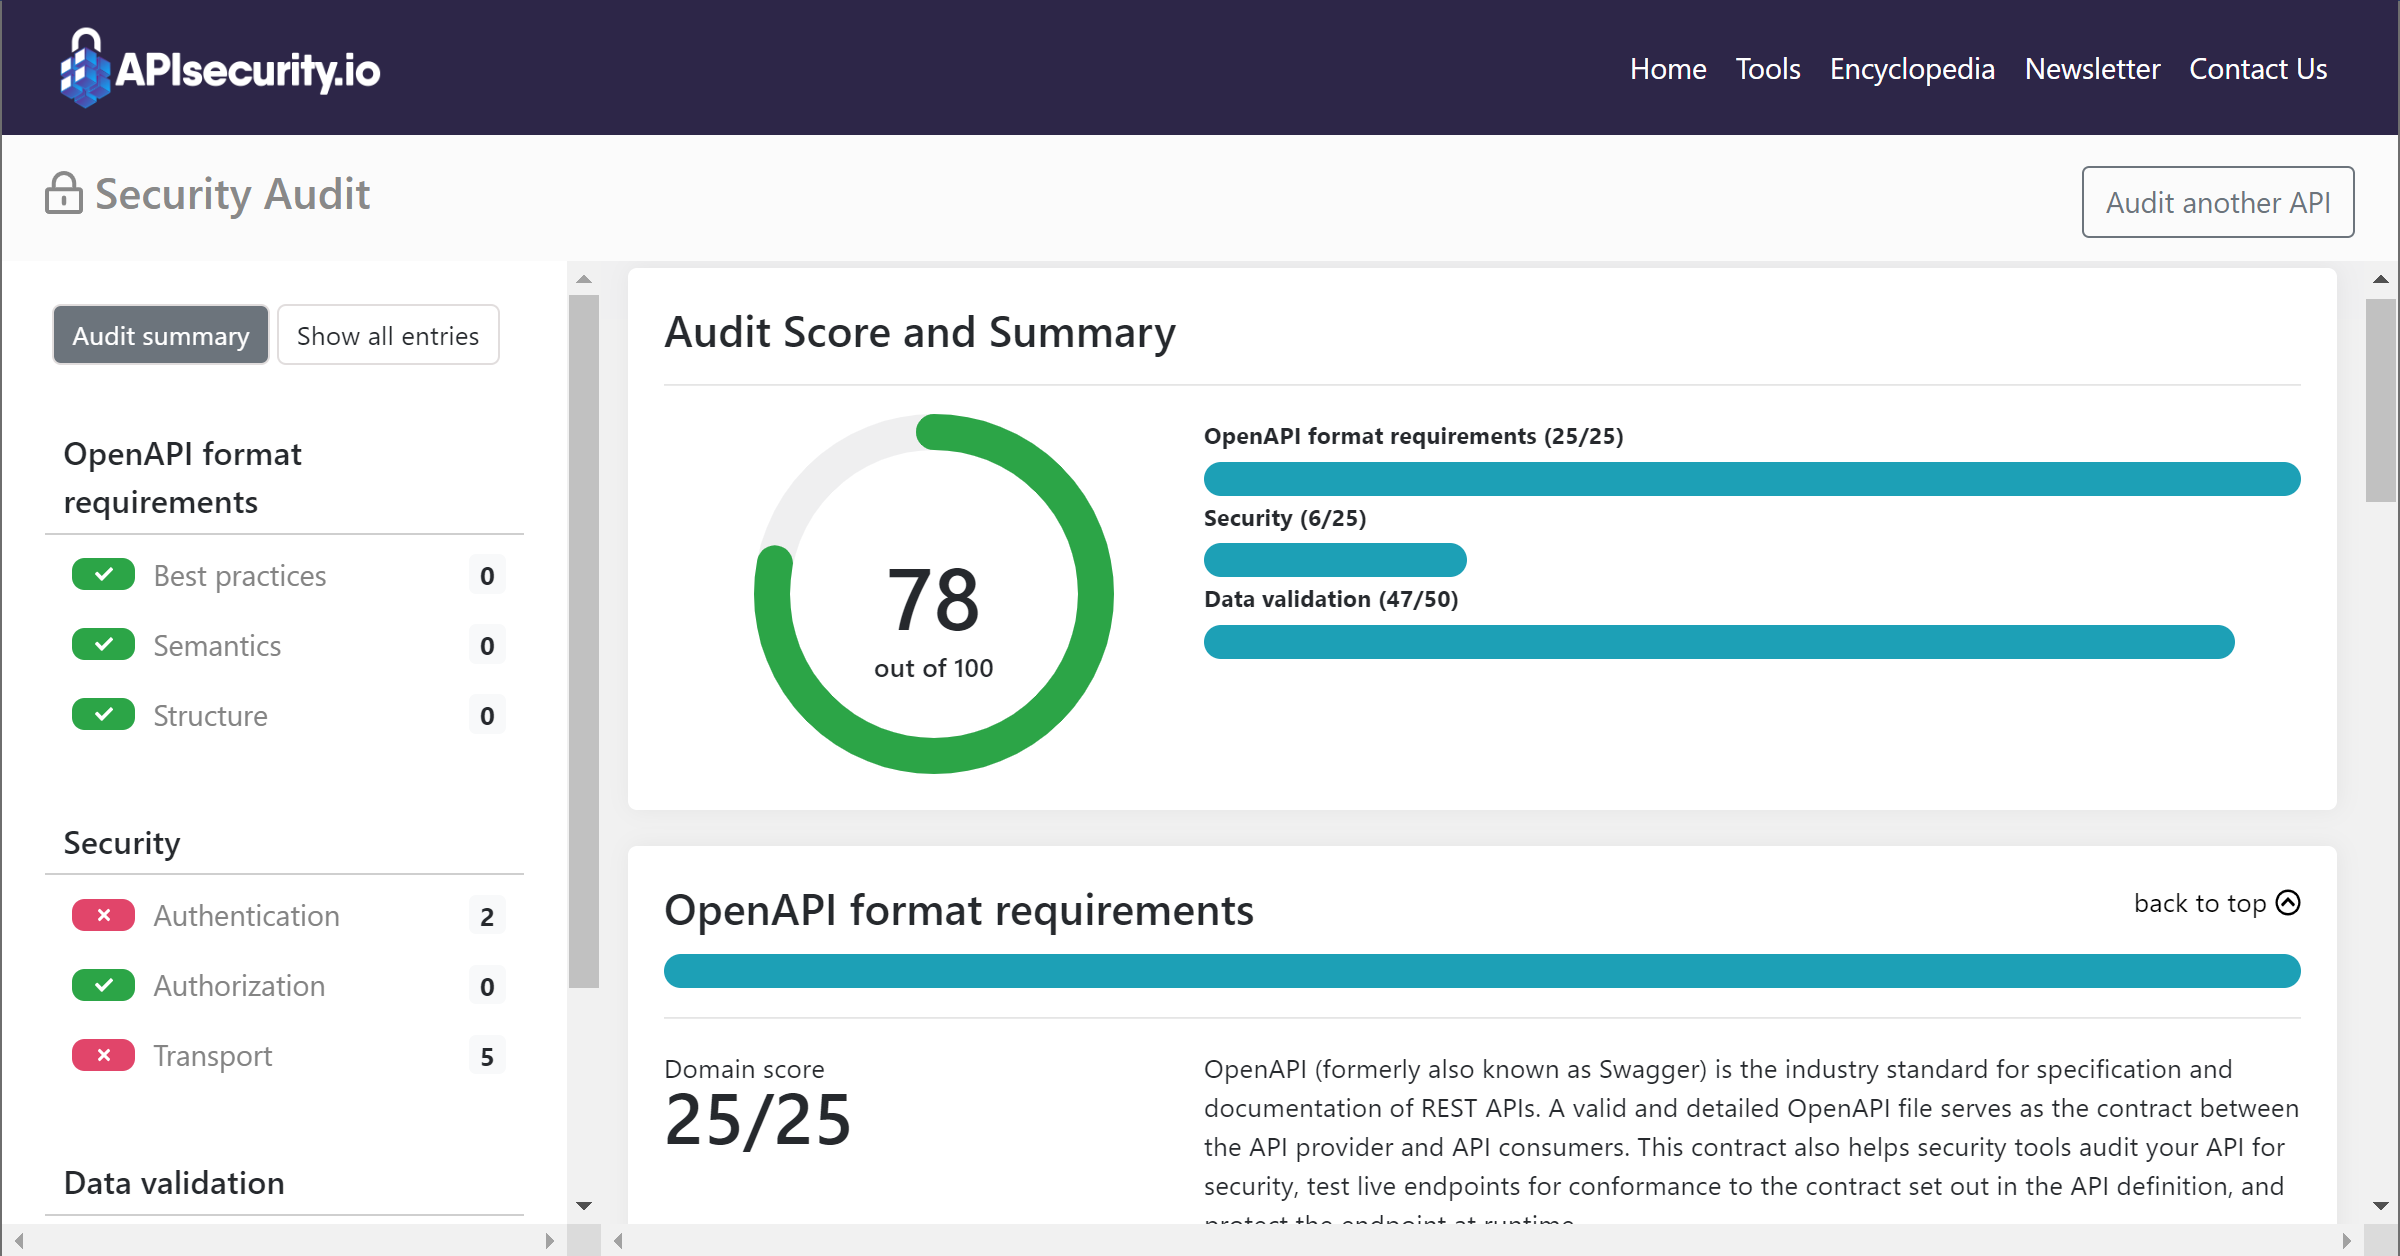 Summary of API contract security audit: OpenAPI format requirements, security, data validation